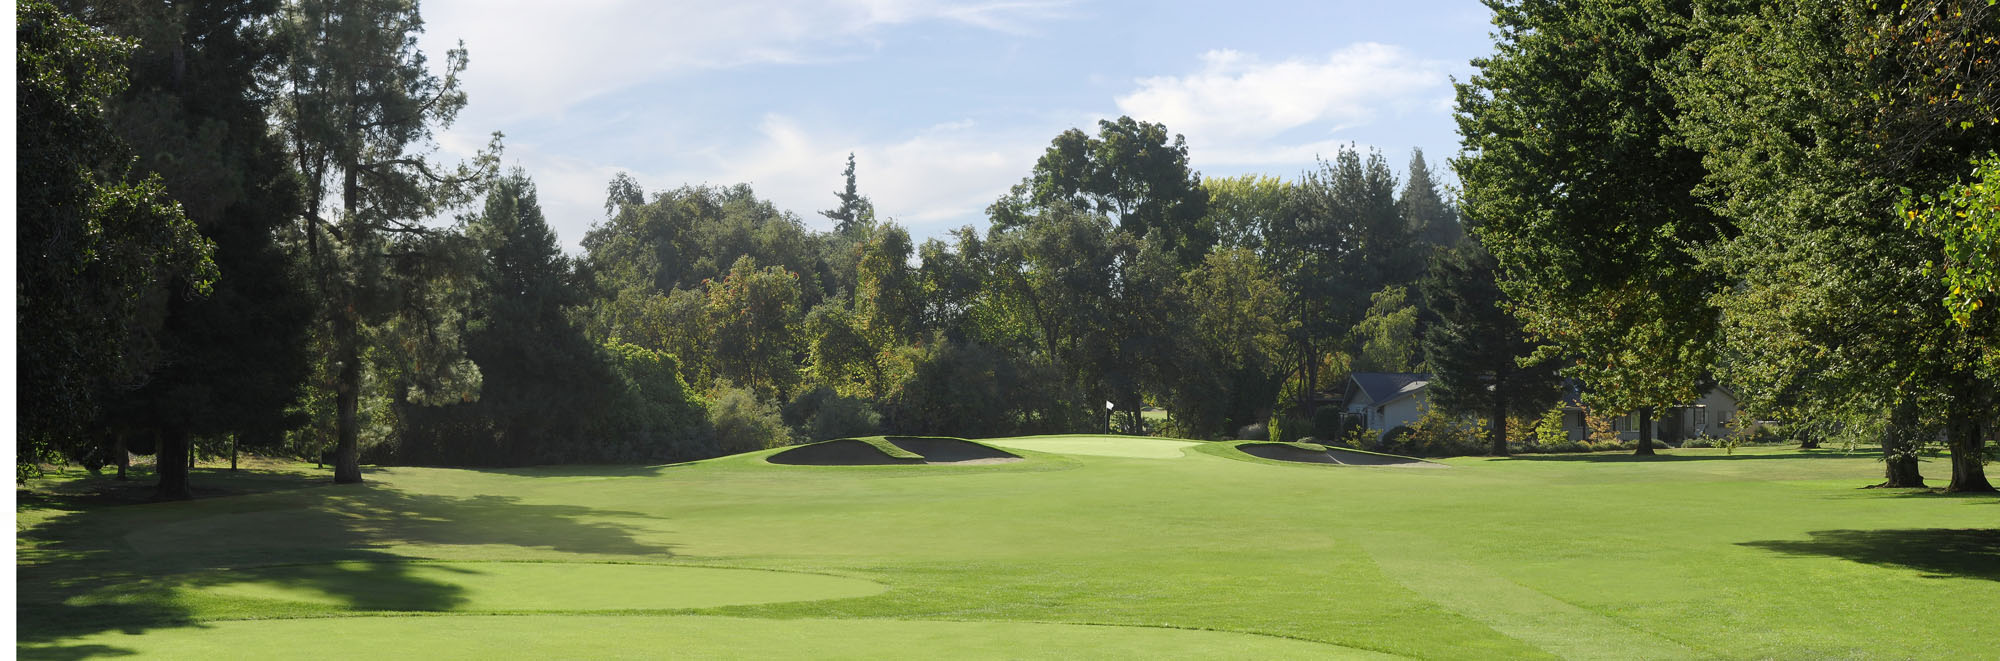 Butte Creek Country Club